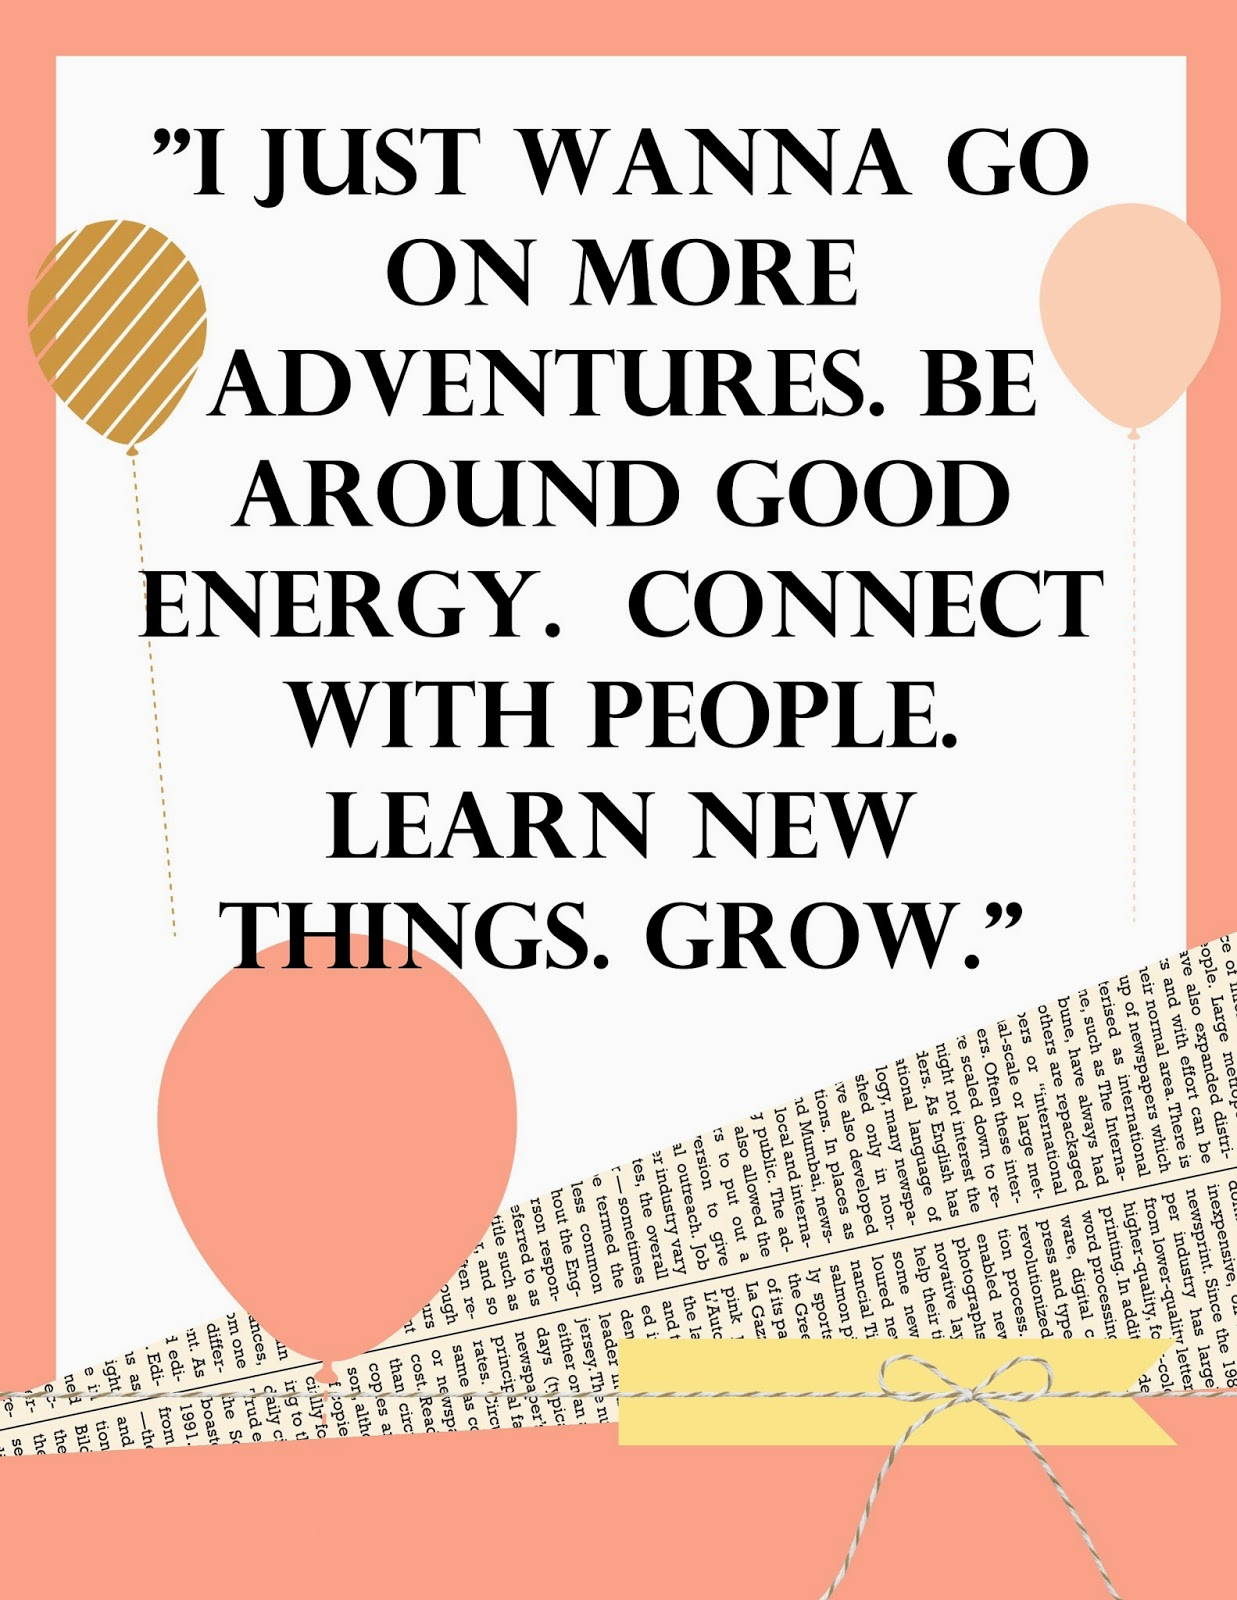 adventures, energy, good, people, learn, new, grow